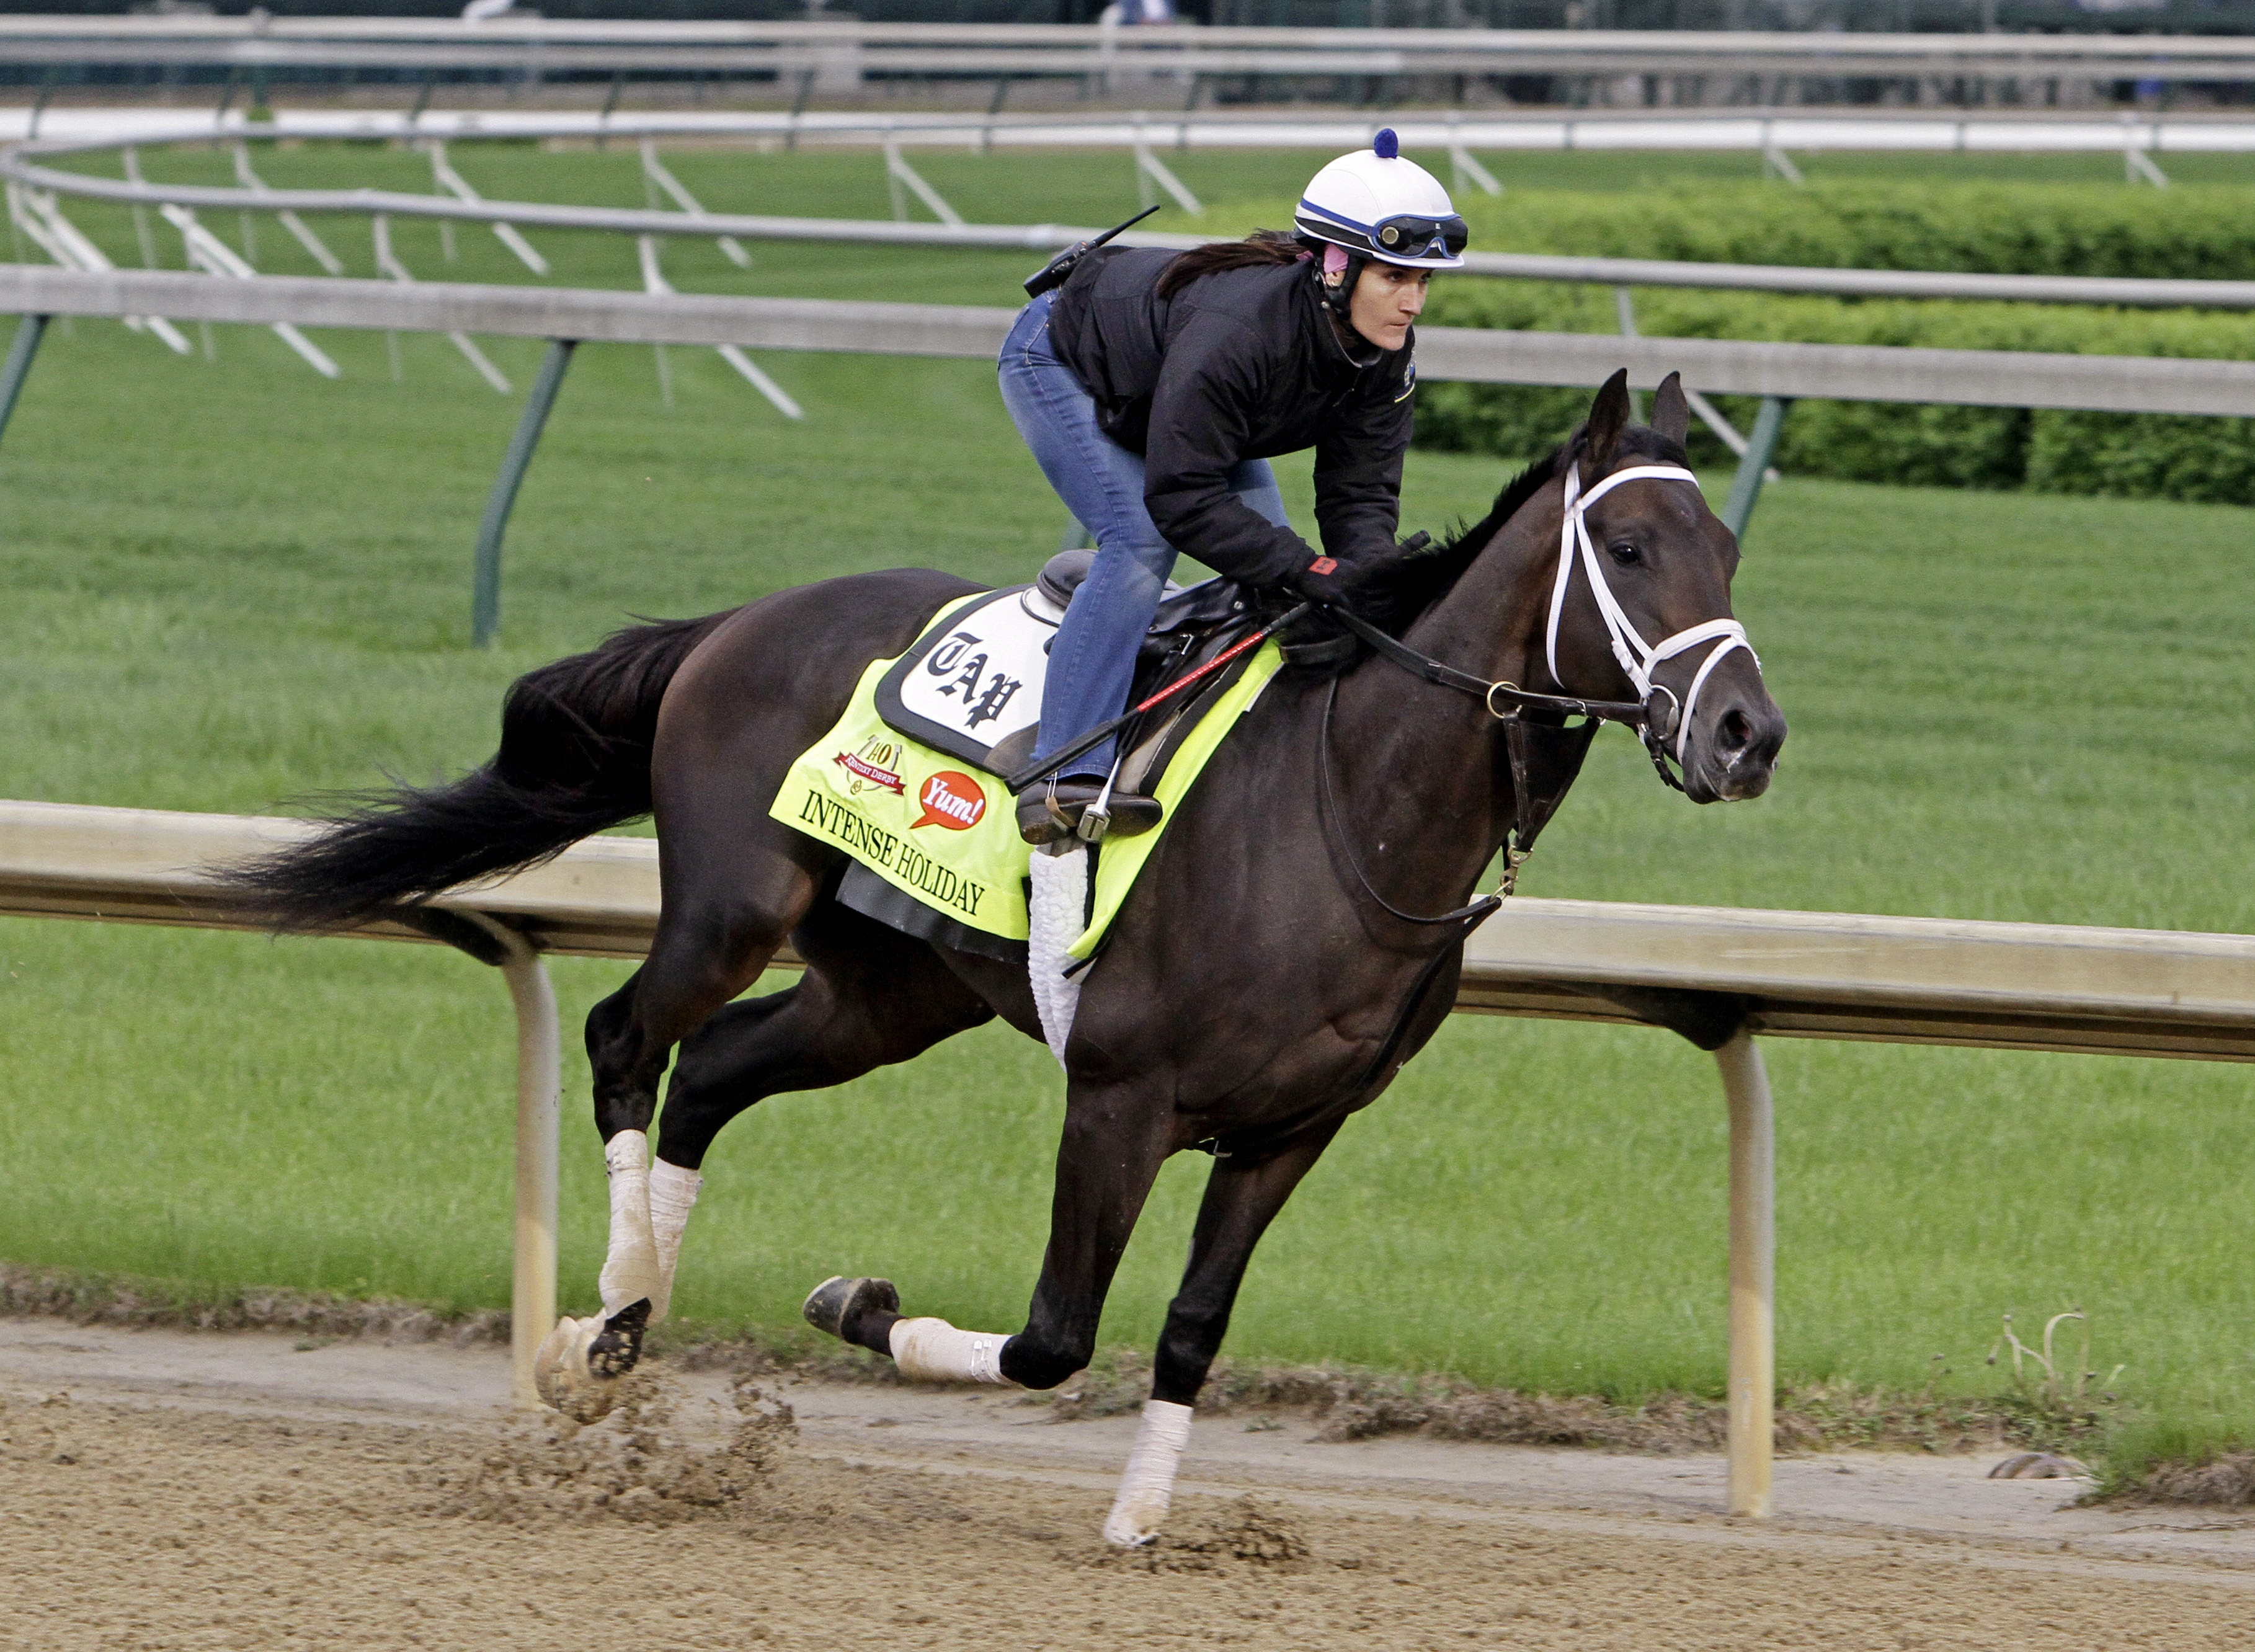 Intense Holiday, trained by Todd Pletcher, has loved the Churchill Downs dirt course since his arrival.